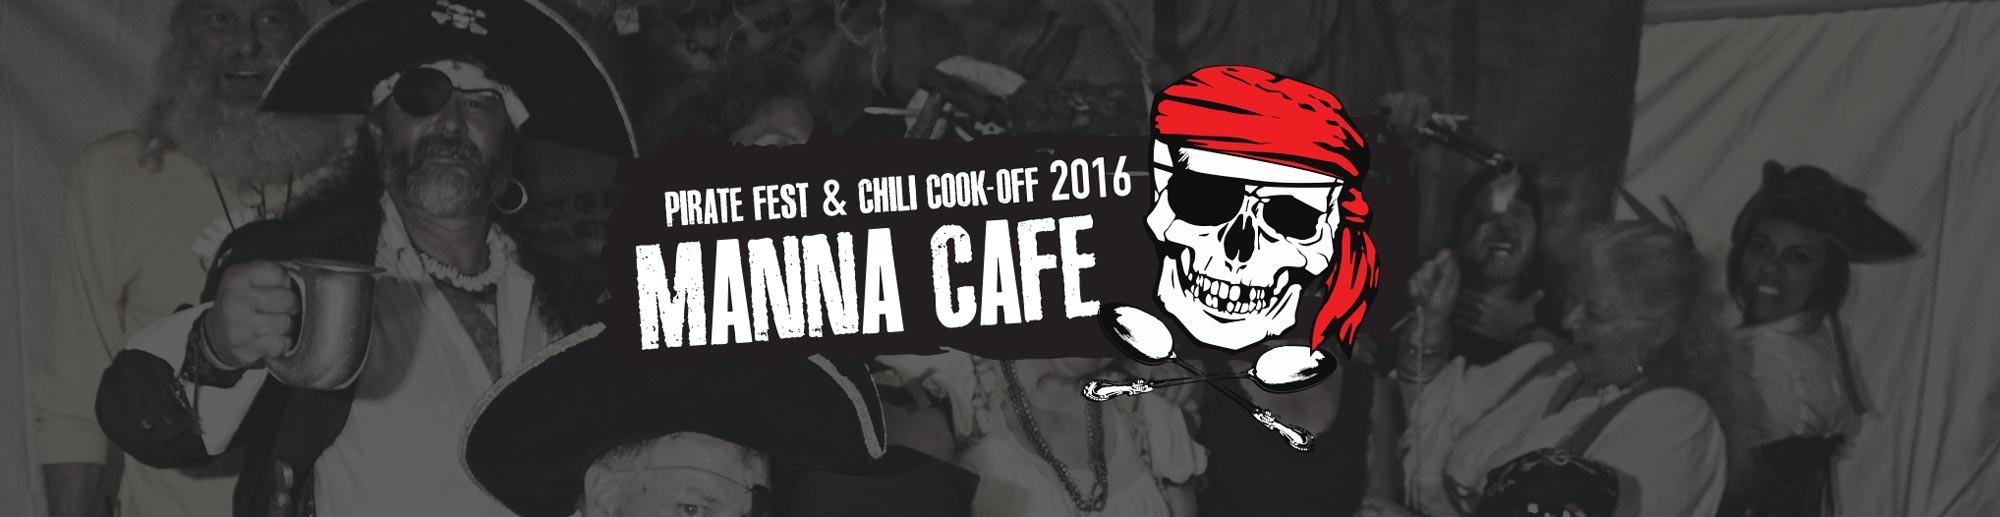 Pirate Fest & Chili Cookoff - Manna Café Ministries